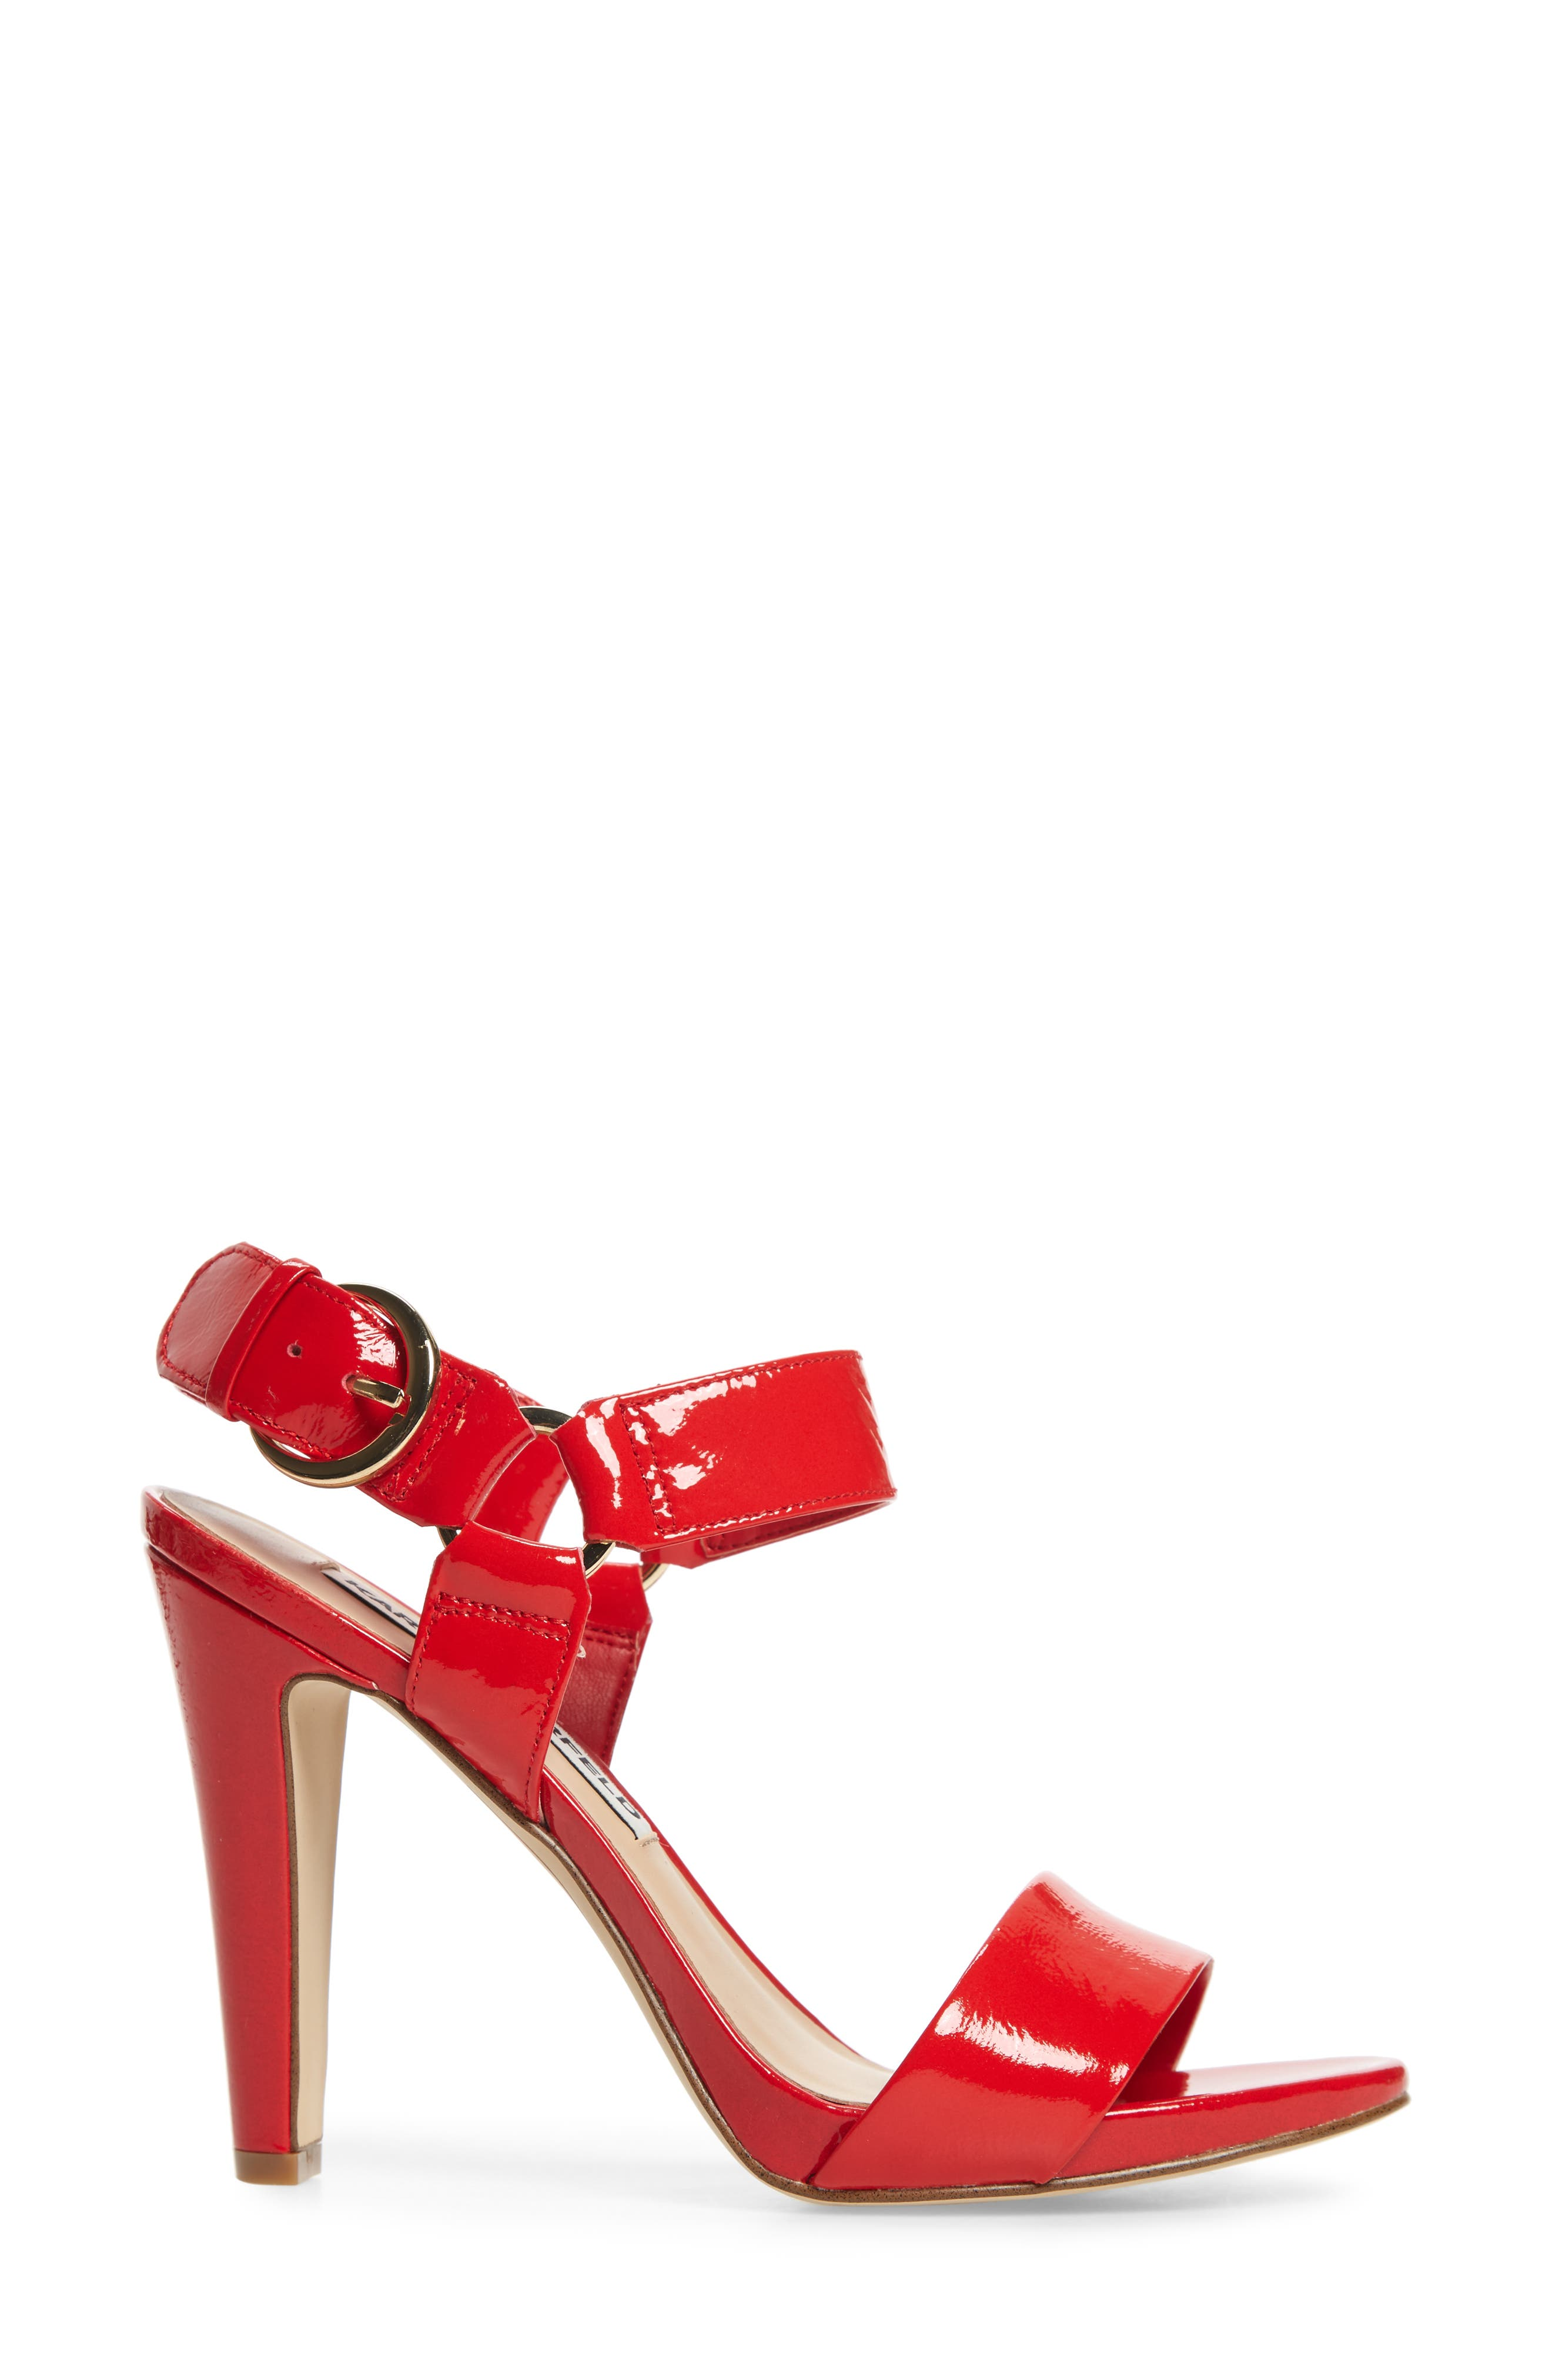 Cieone Sandal,                             Alternate thumbnail 3, color,                             RED PATENT